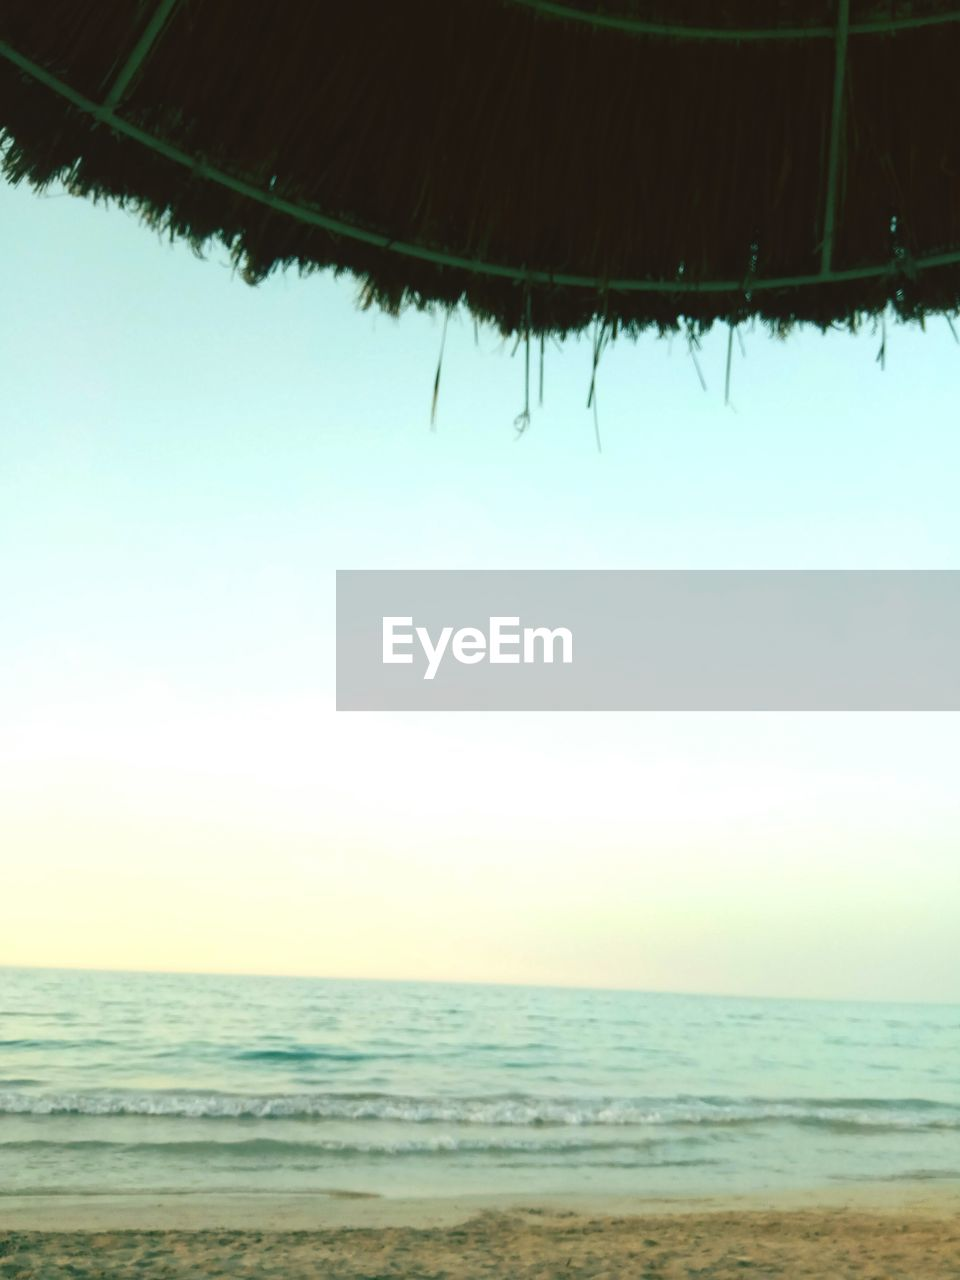 sea, sky, water, horizon, tranquility, land, scenics - nature, horizon over water, beauty in nature, beach, nature, tranquil scene, day, clear sky, no people, outdoors, idyllic, copy space, focus on foreground